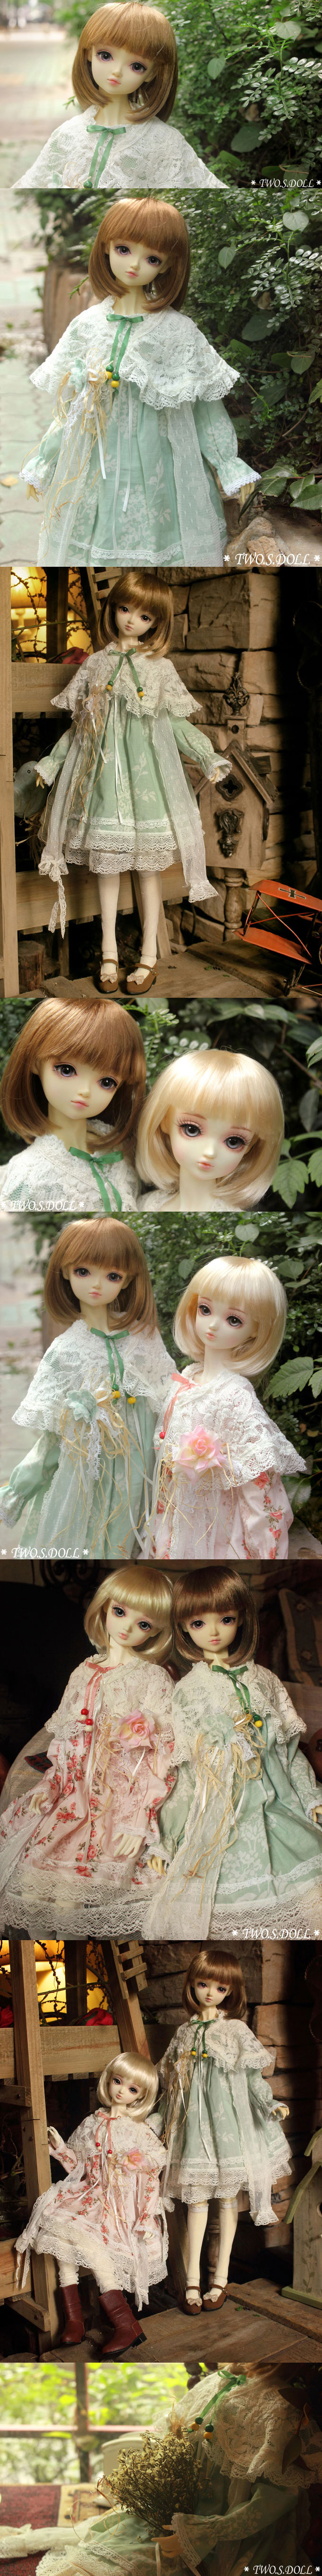 BJD spring travel-Dorean 58cm Girl Ball-jointed doll